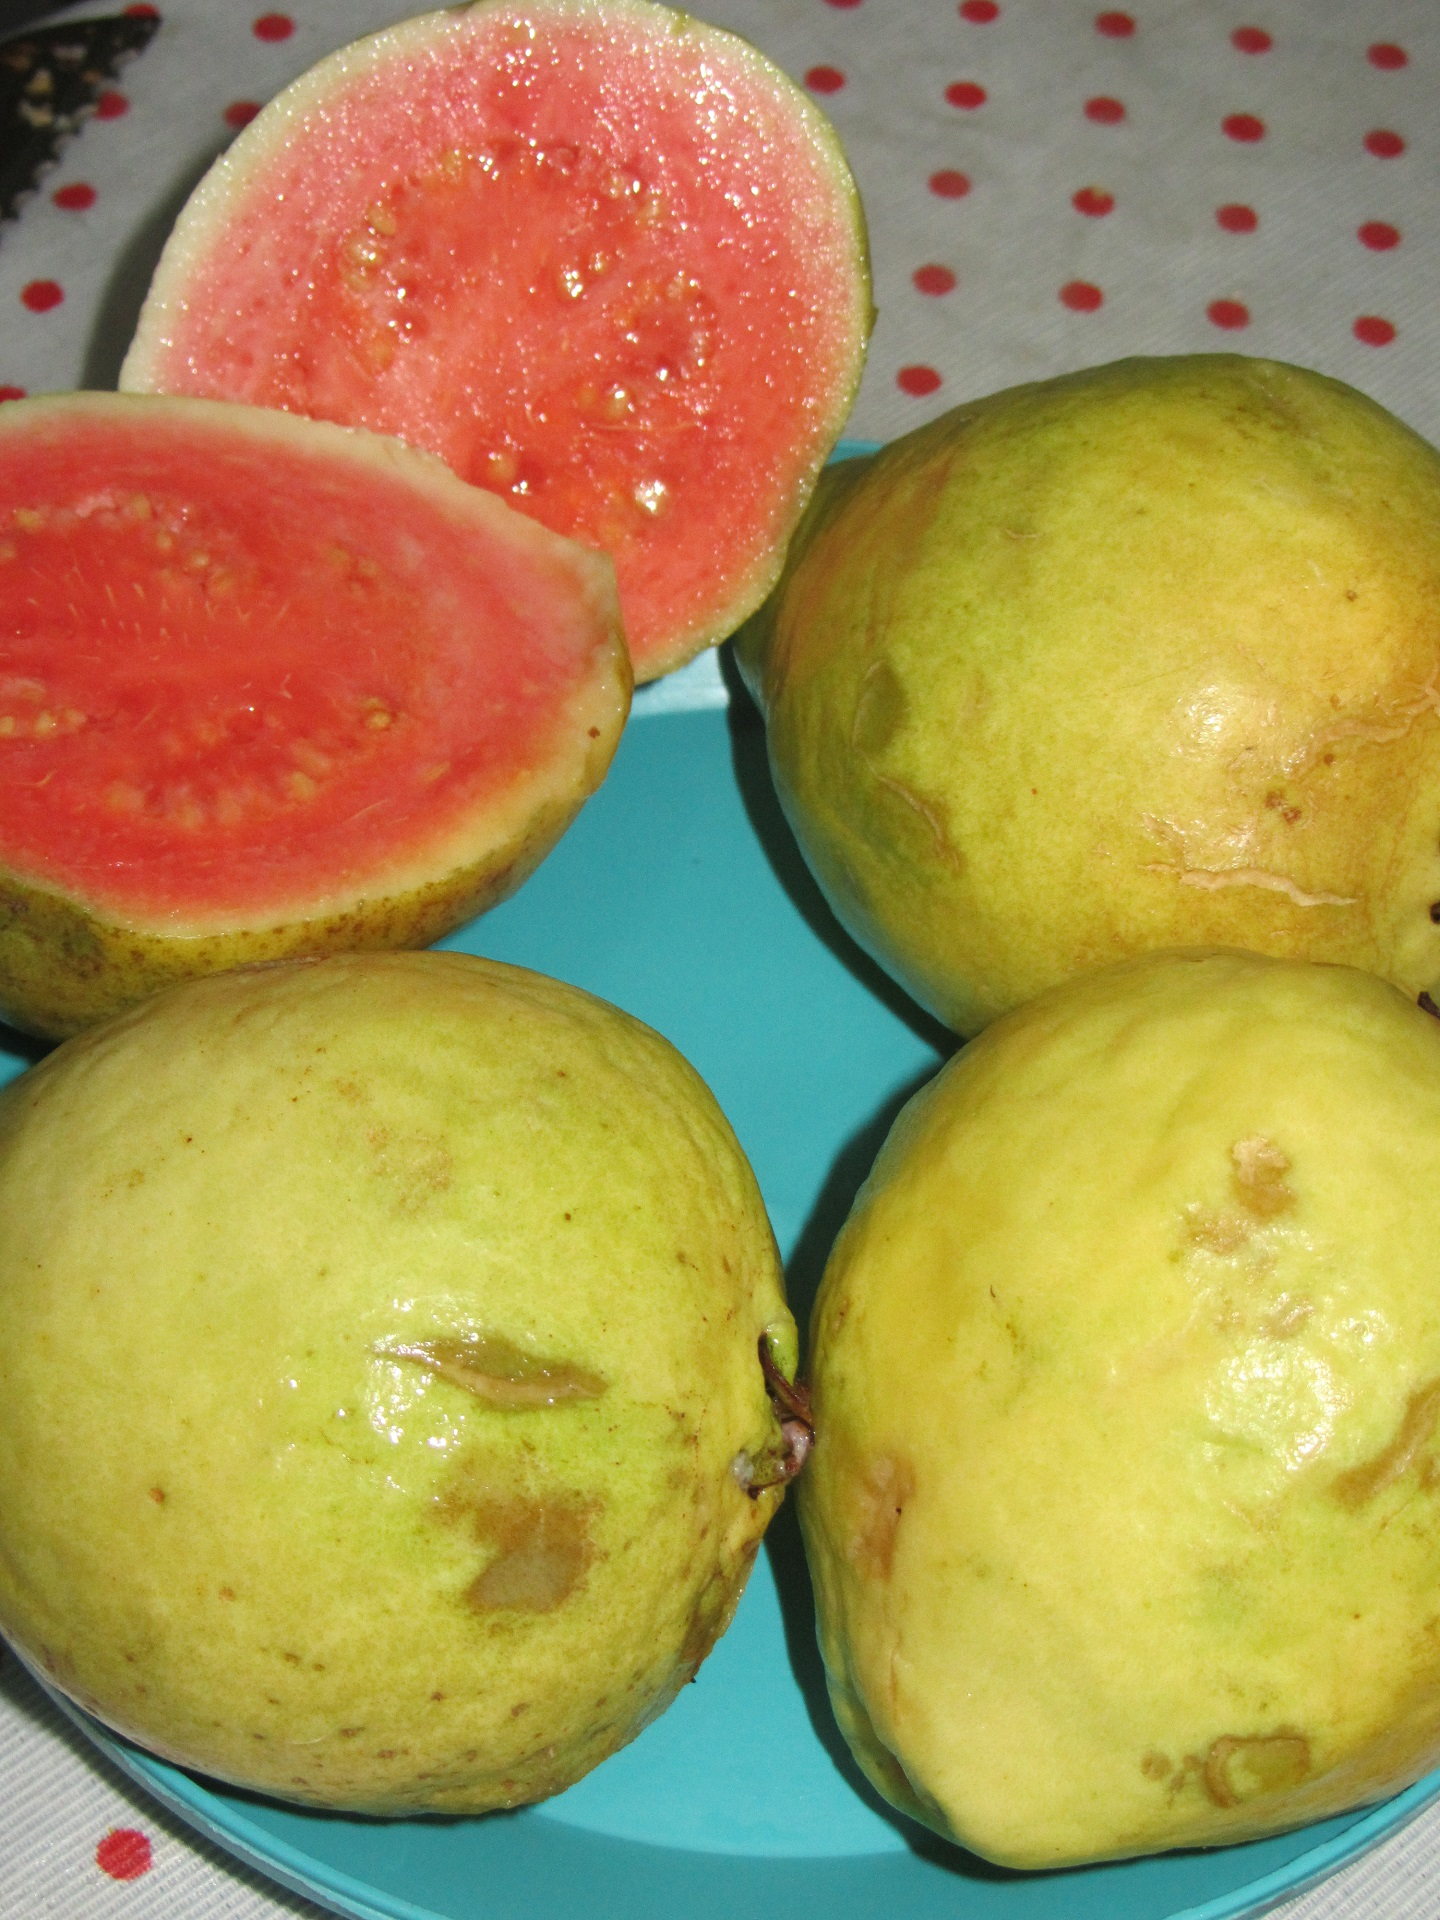 Guava-benefits-and-harms